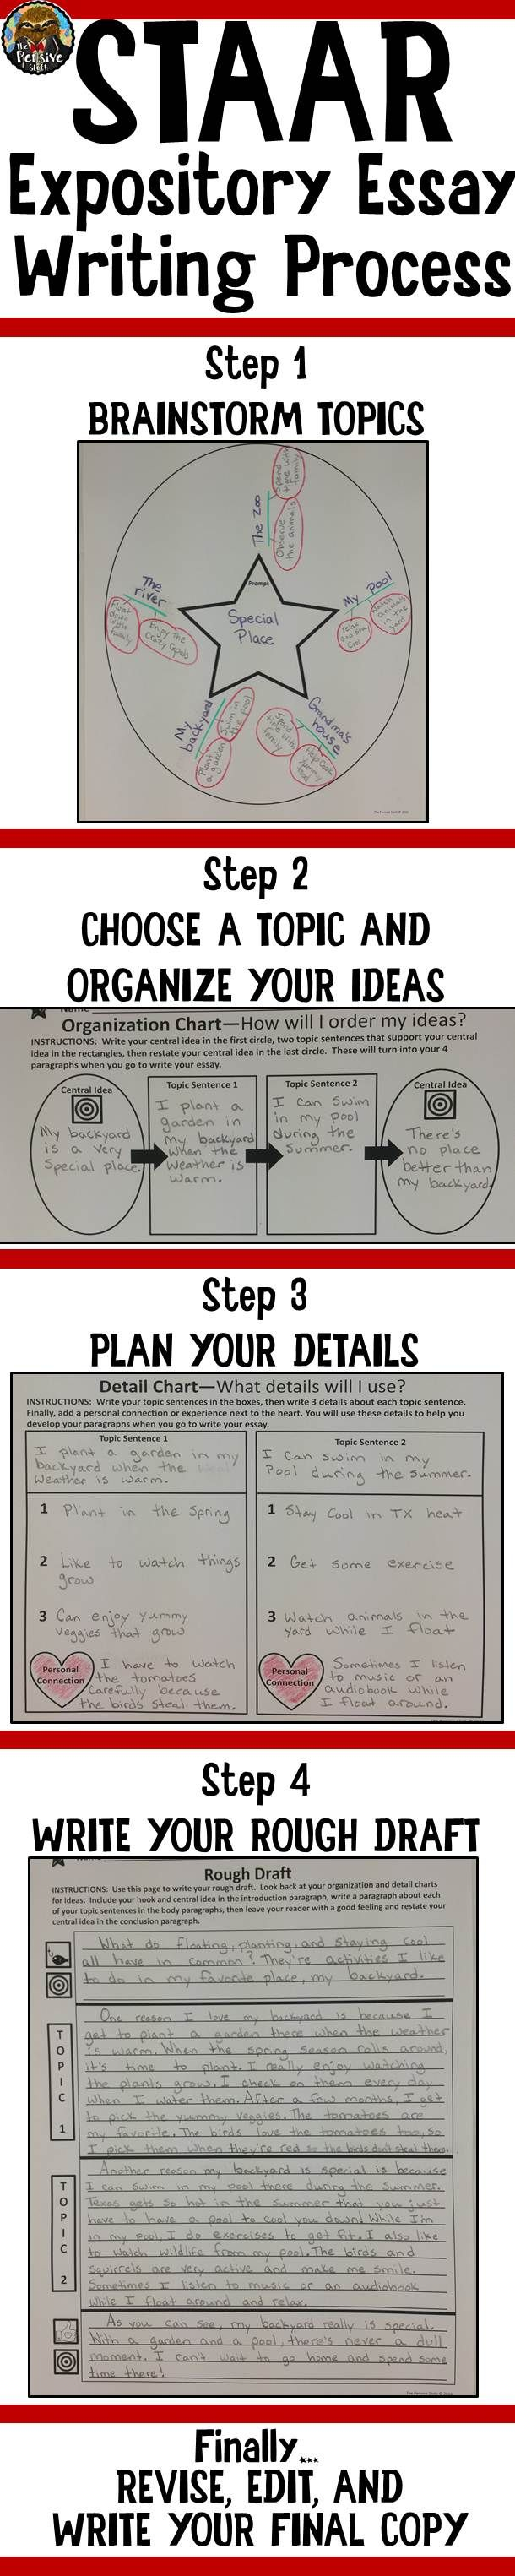 4th grade staar writing expository essay graphic organizers 4th grade staar writing for students who struggle writing break the process